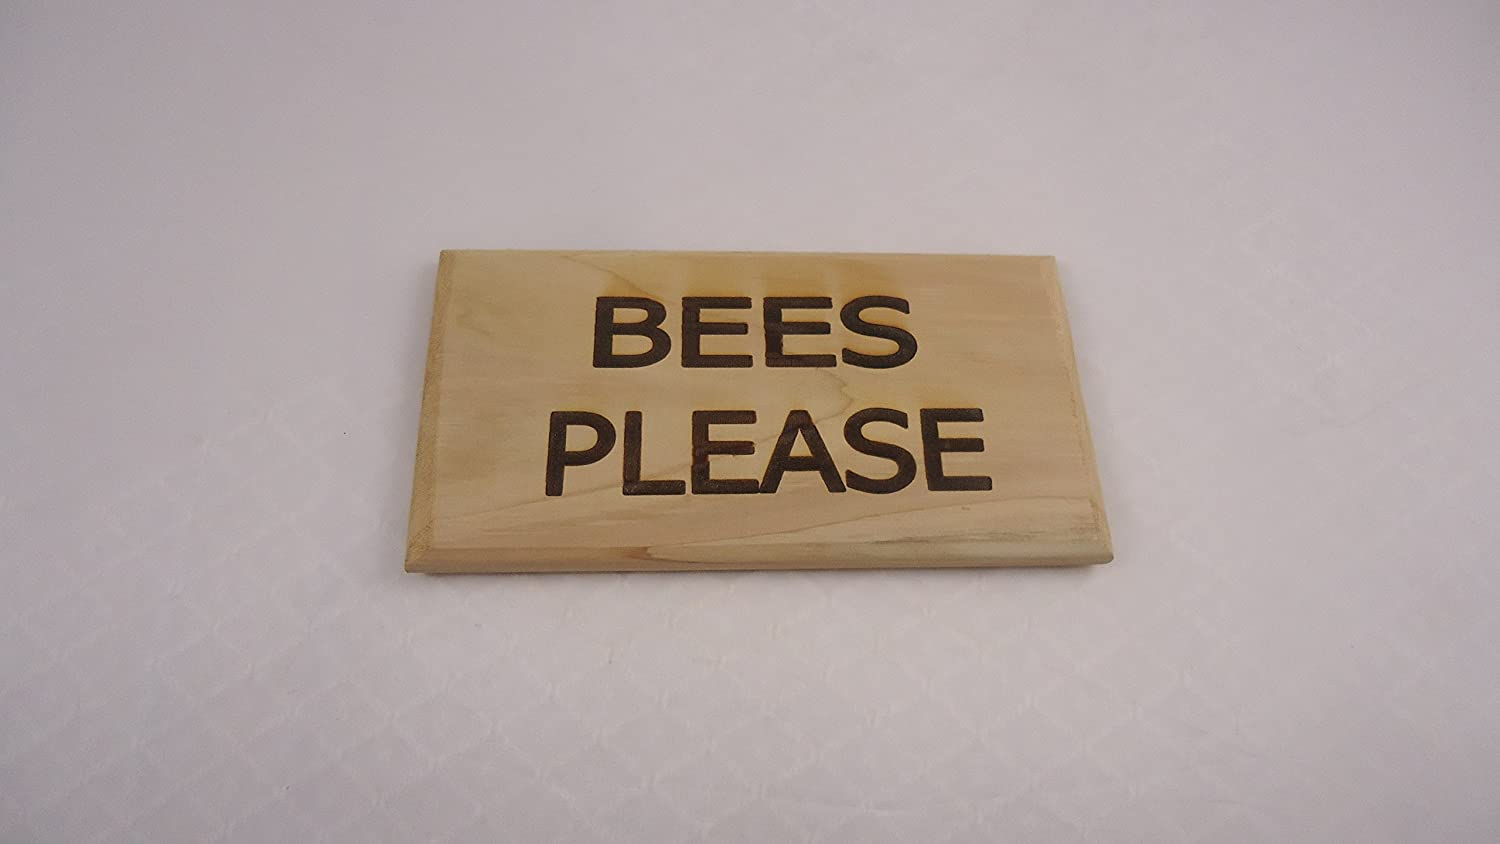 BEES PLEASE SIGN WITH STAKE LEEWAY WOODWORK